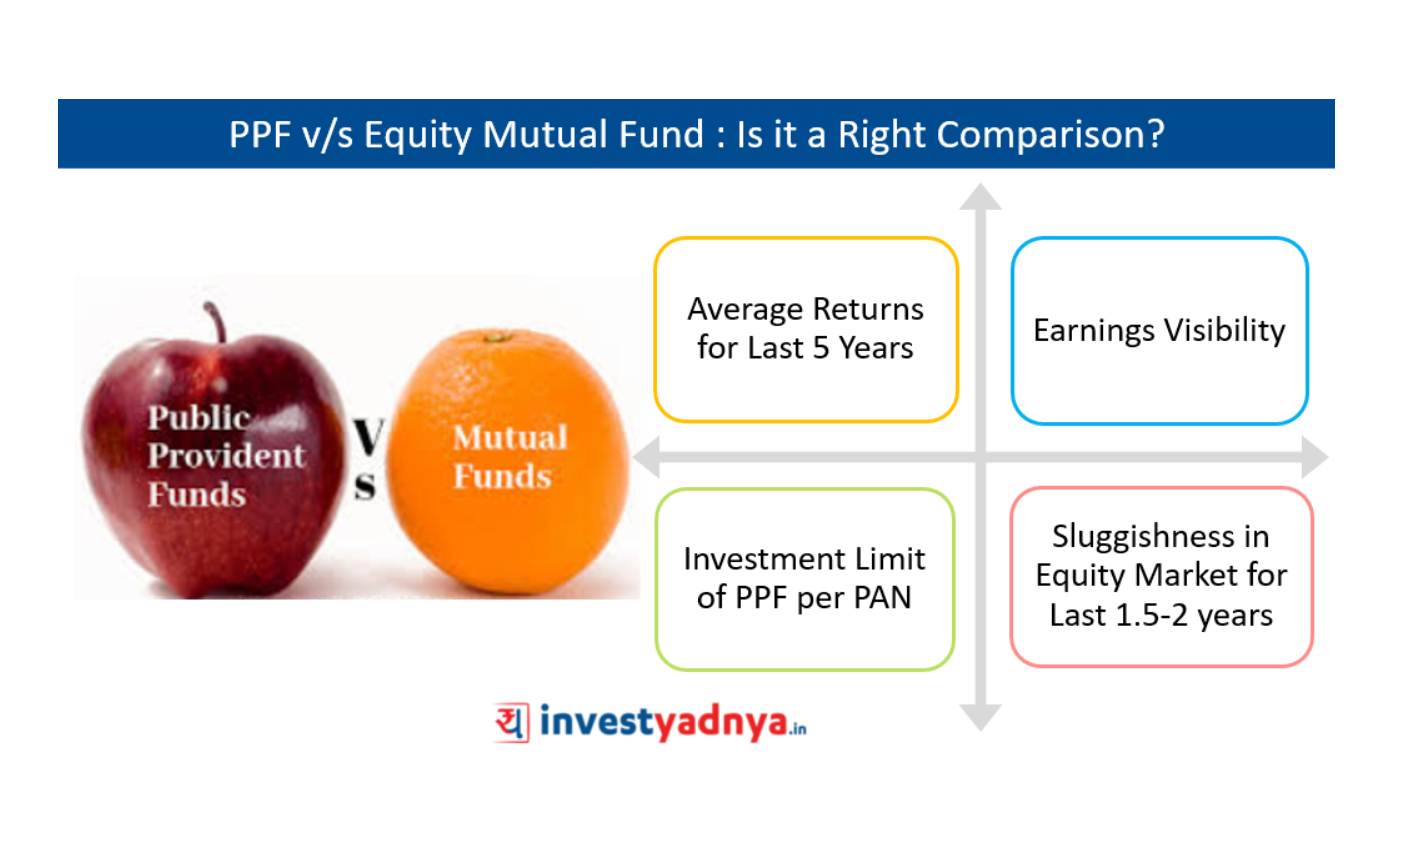 PPF v/s Equity Mutual Fund : Is it a Right Comparison?